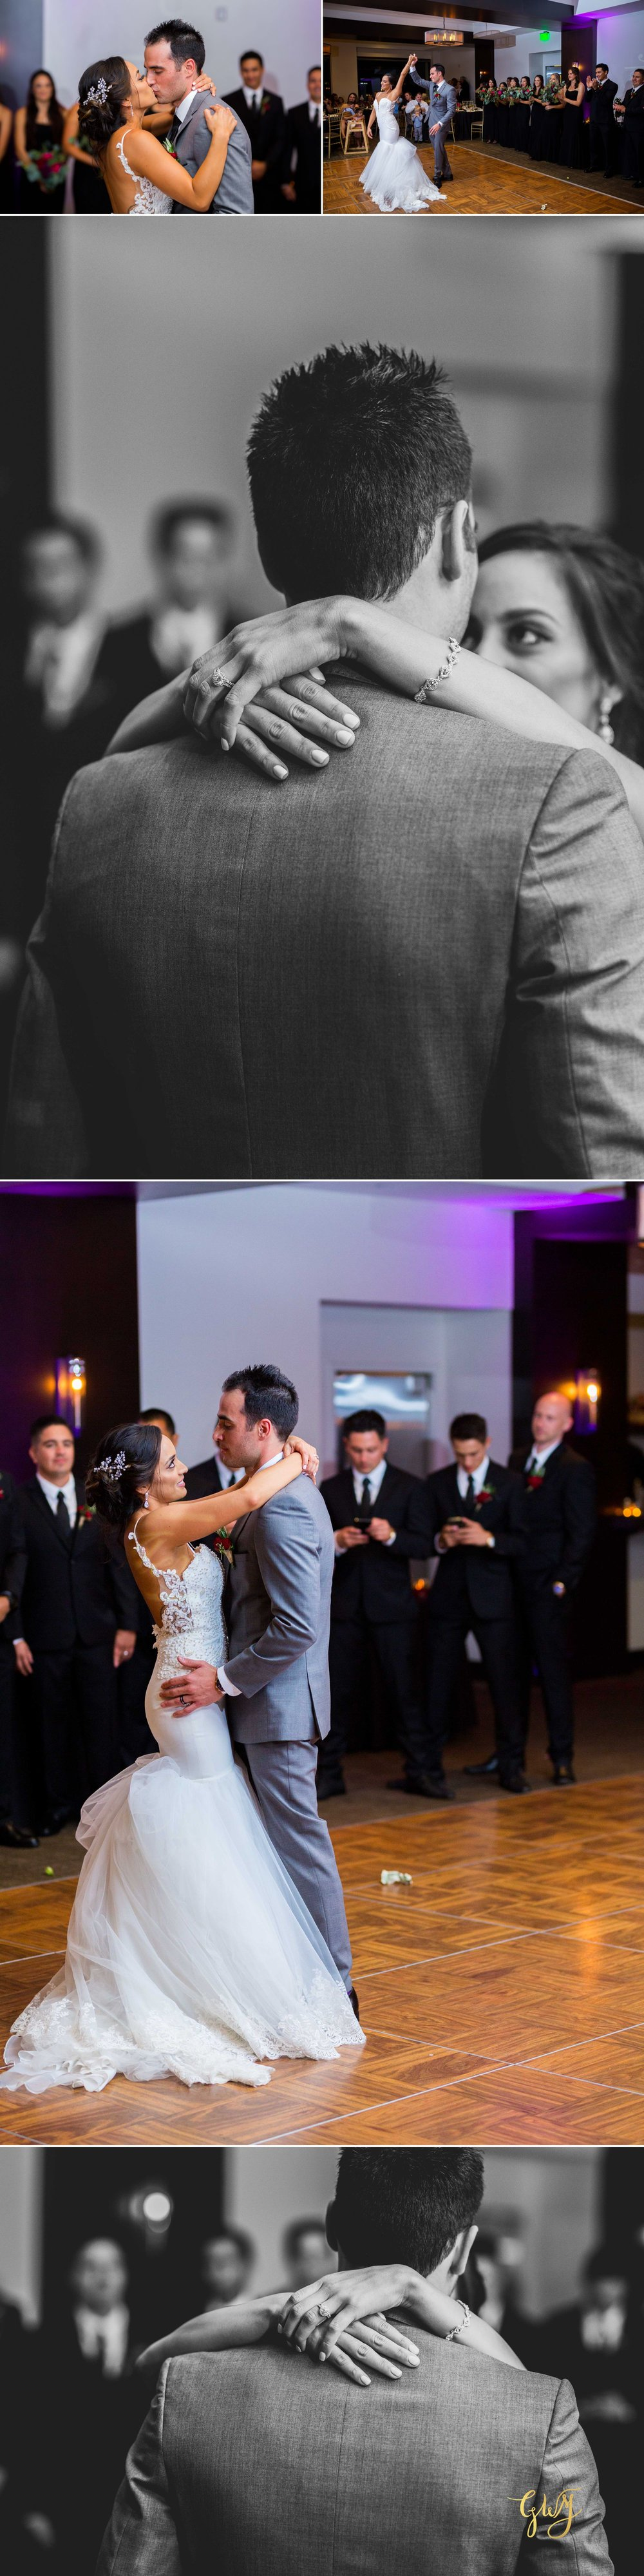 Alex + Jackie Elegant Tom Ham's Lighthouse San Diego Wedding by Glass Woods Media 39.jpg